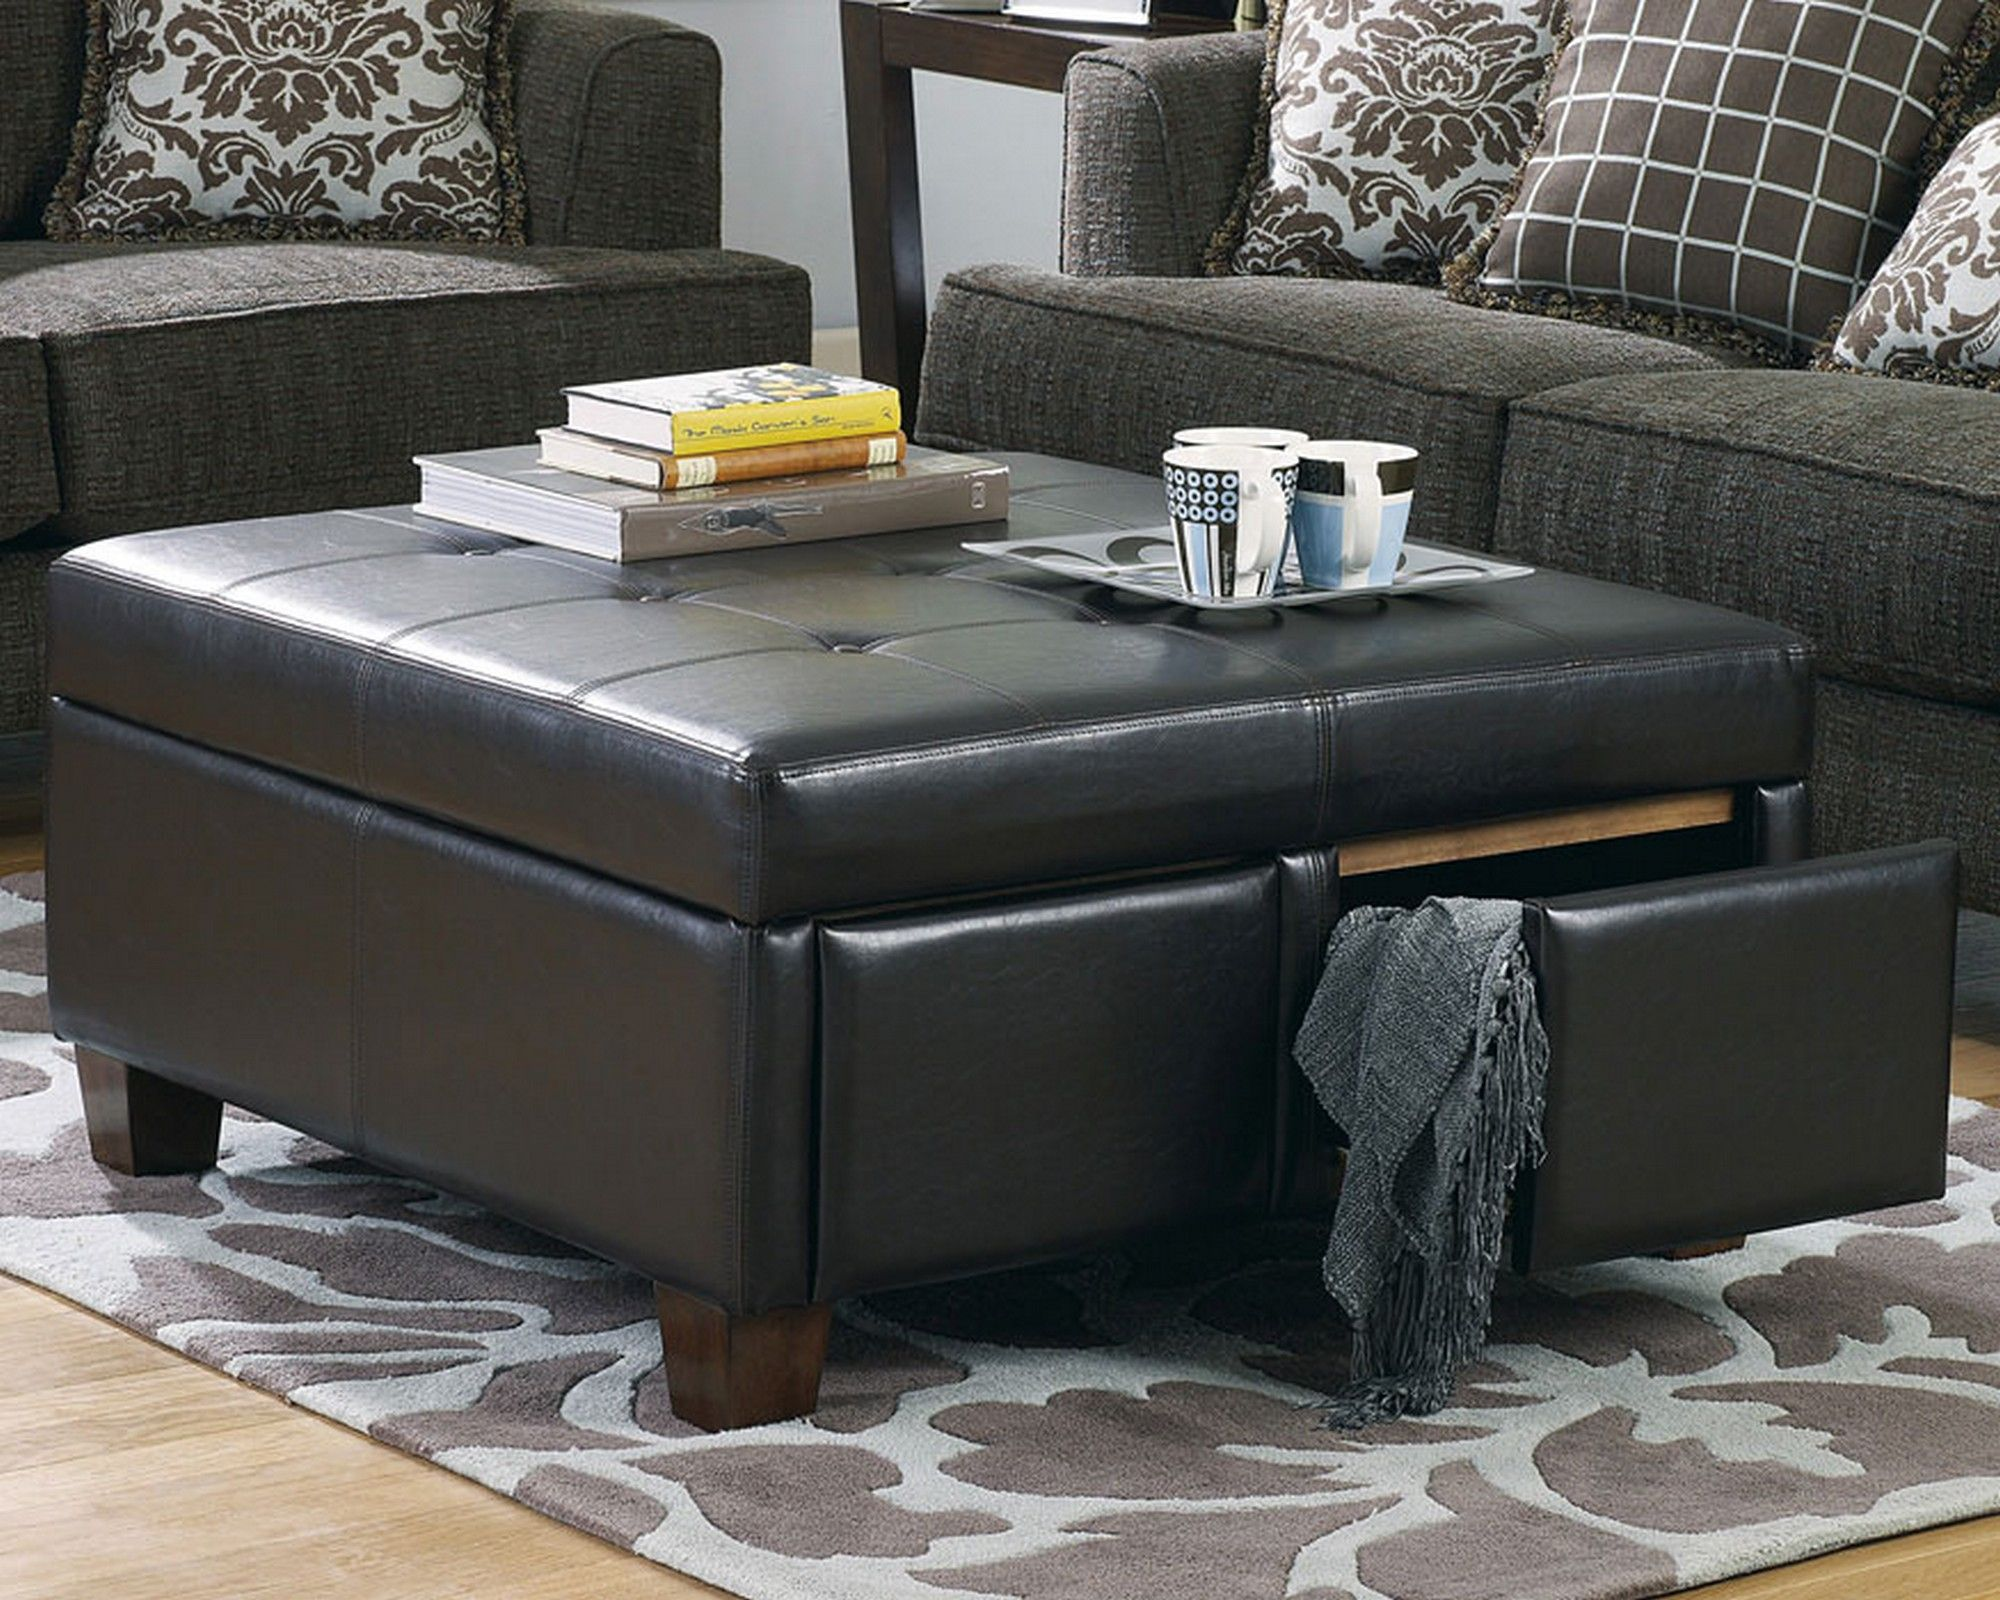 large round ottoman coffee table DownloadFull Size of